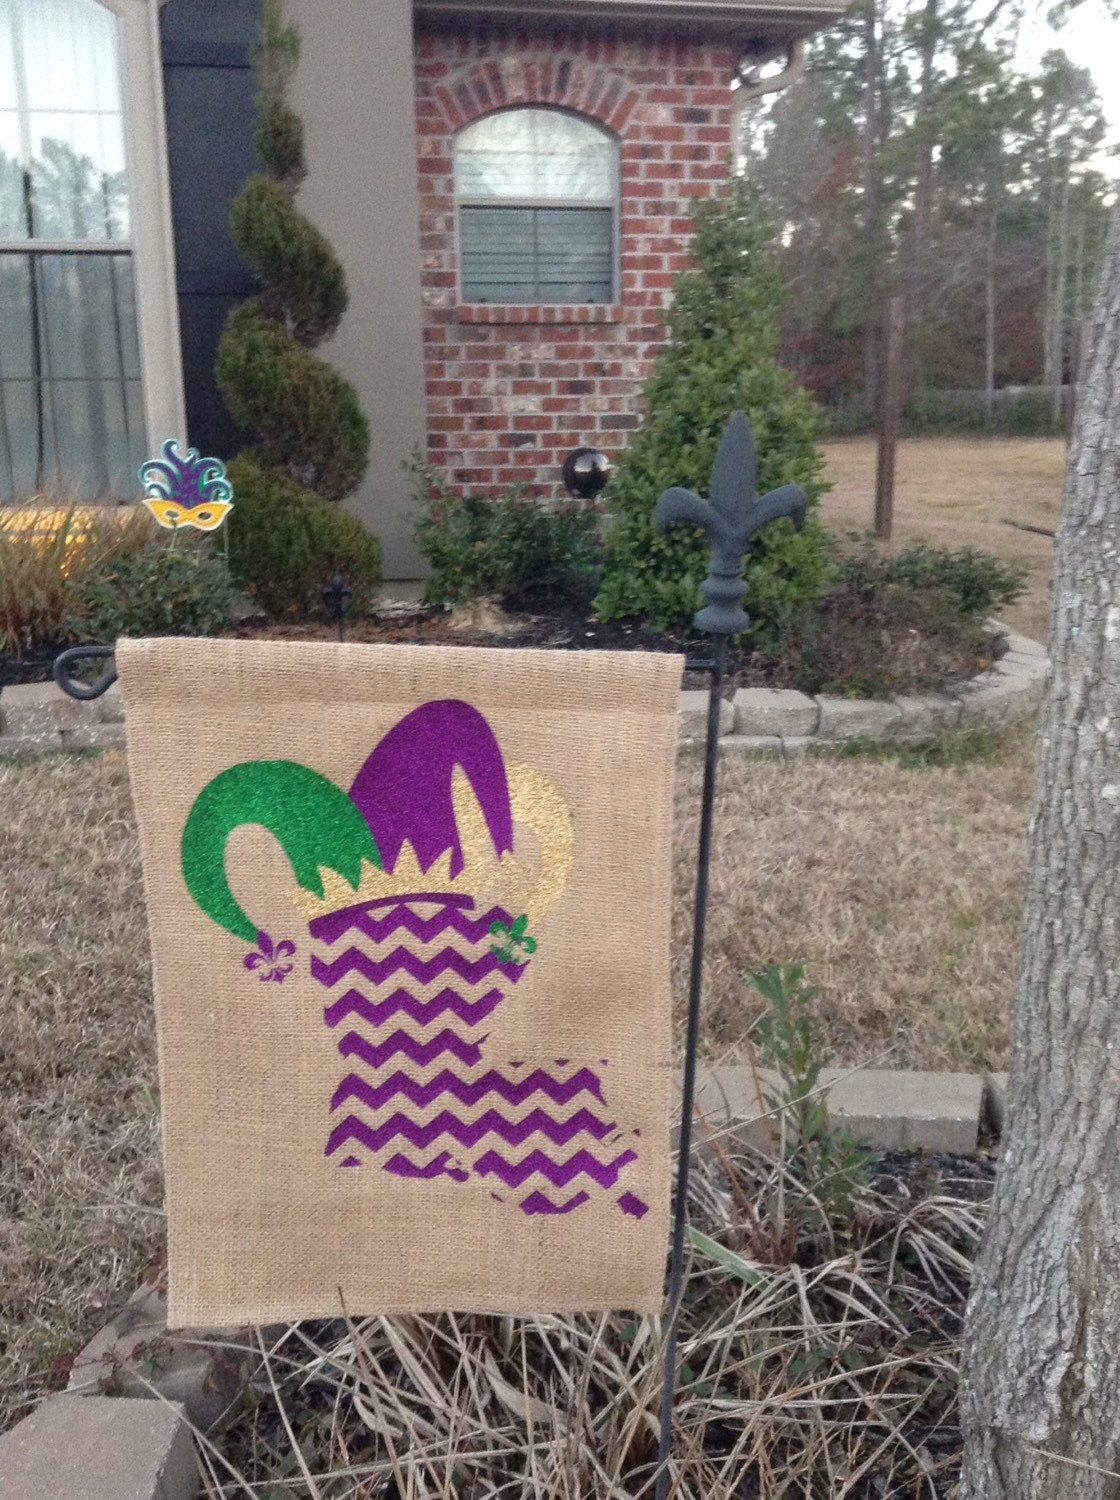 Superior Burlap Garden Flag With Louisiana And Mardi Gras Jester Hat